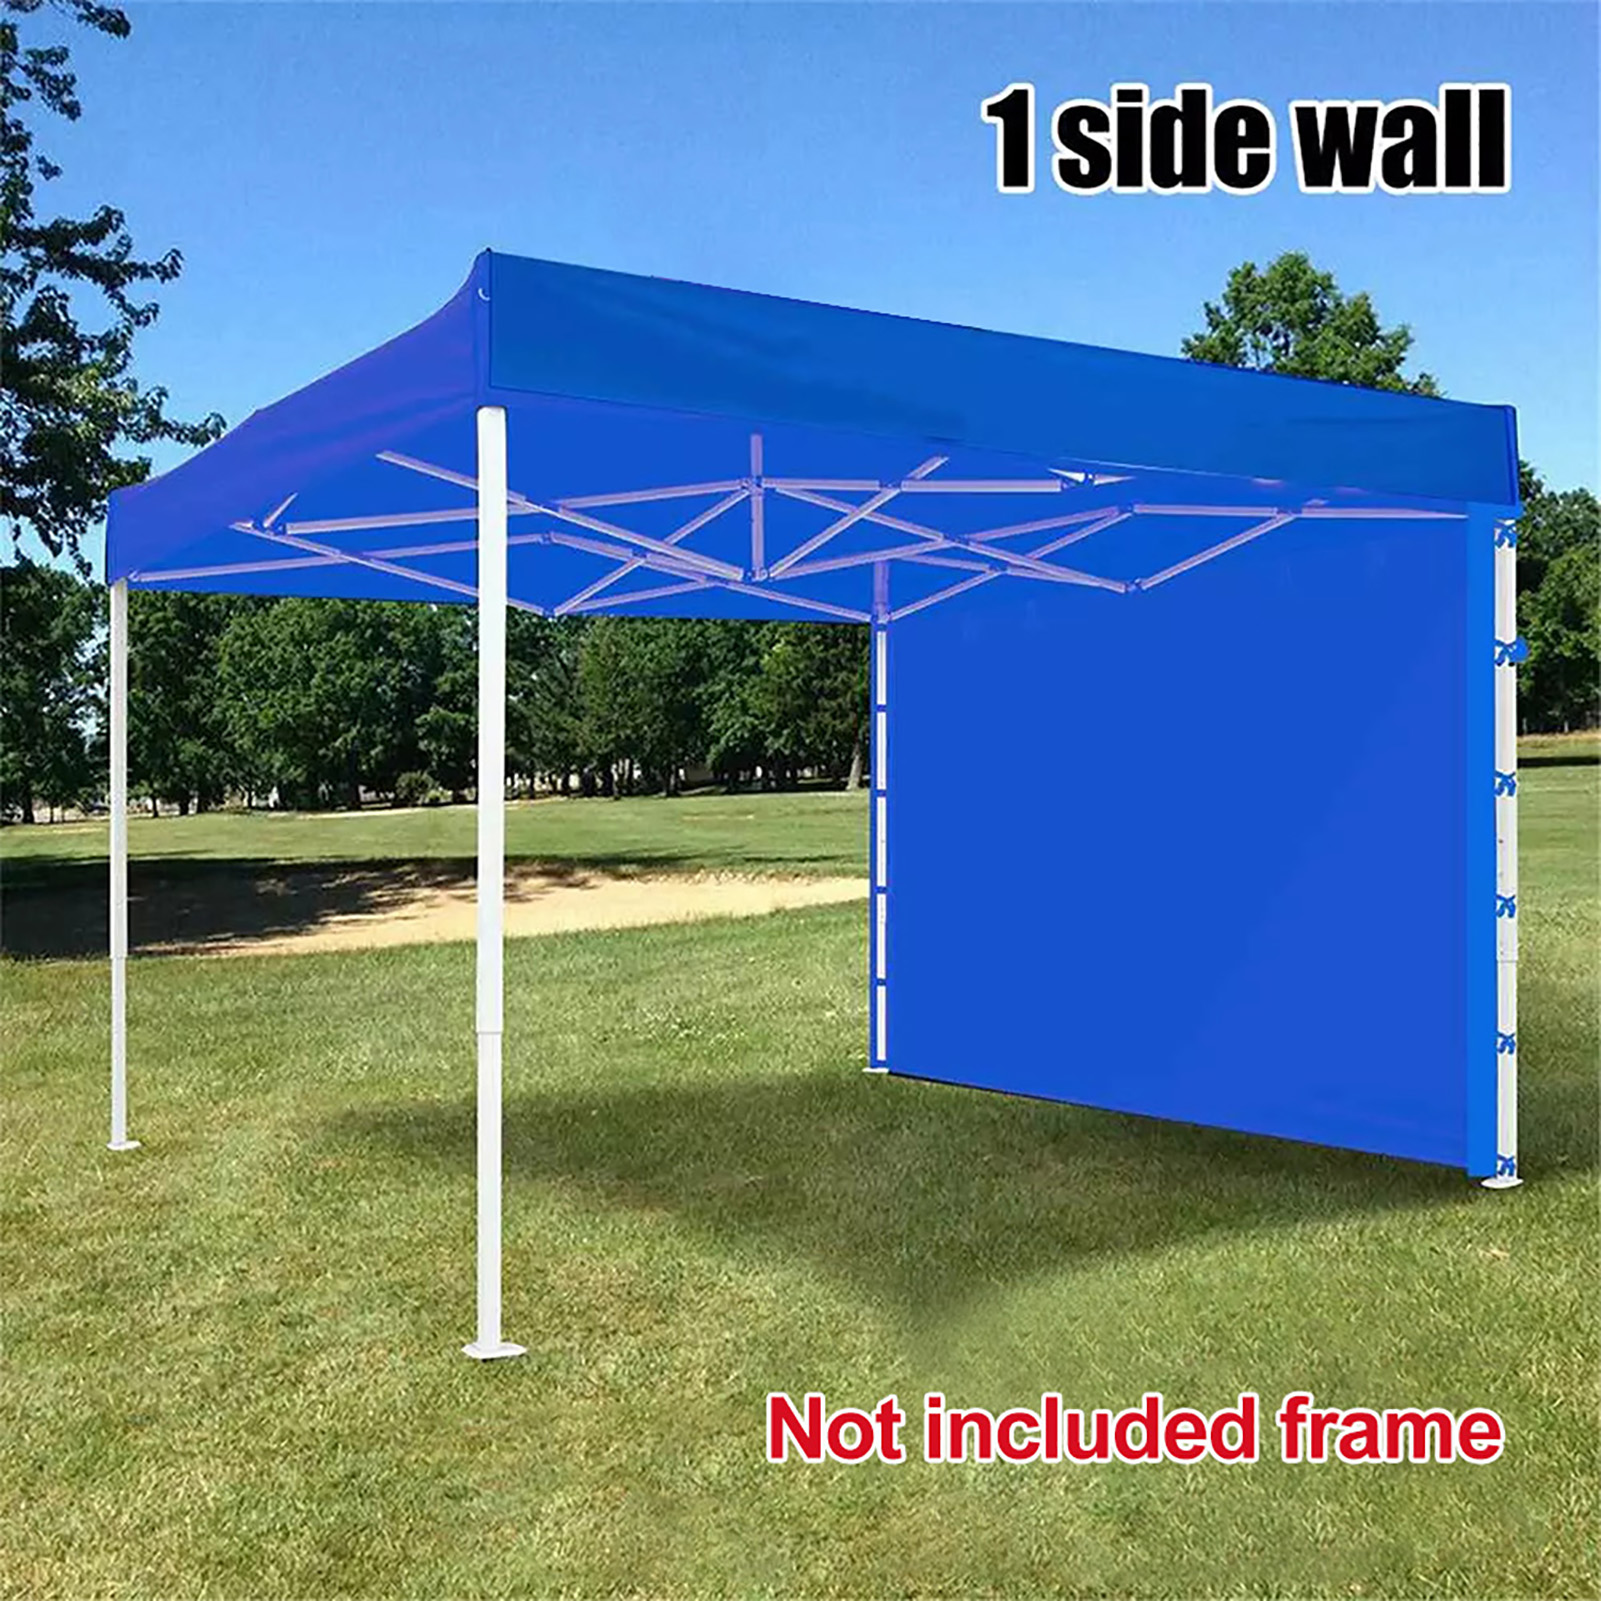 Folding Tent Top Canopy Replacement Cover Oxford Cloth Waterproof Rainproof Anti UV Sun Shelter Outdoor Sunshade Tents 33X20X6cm